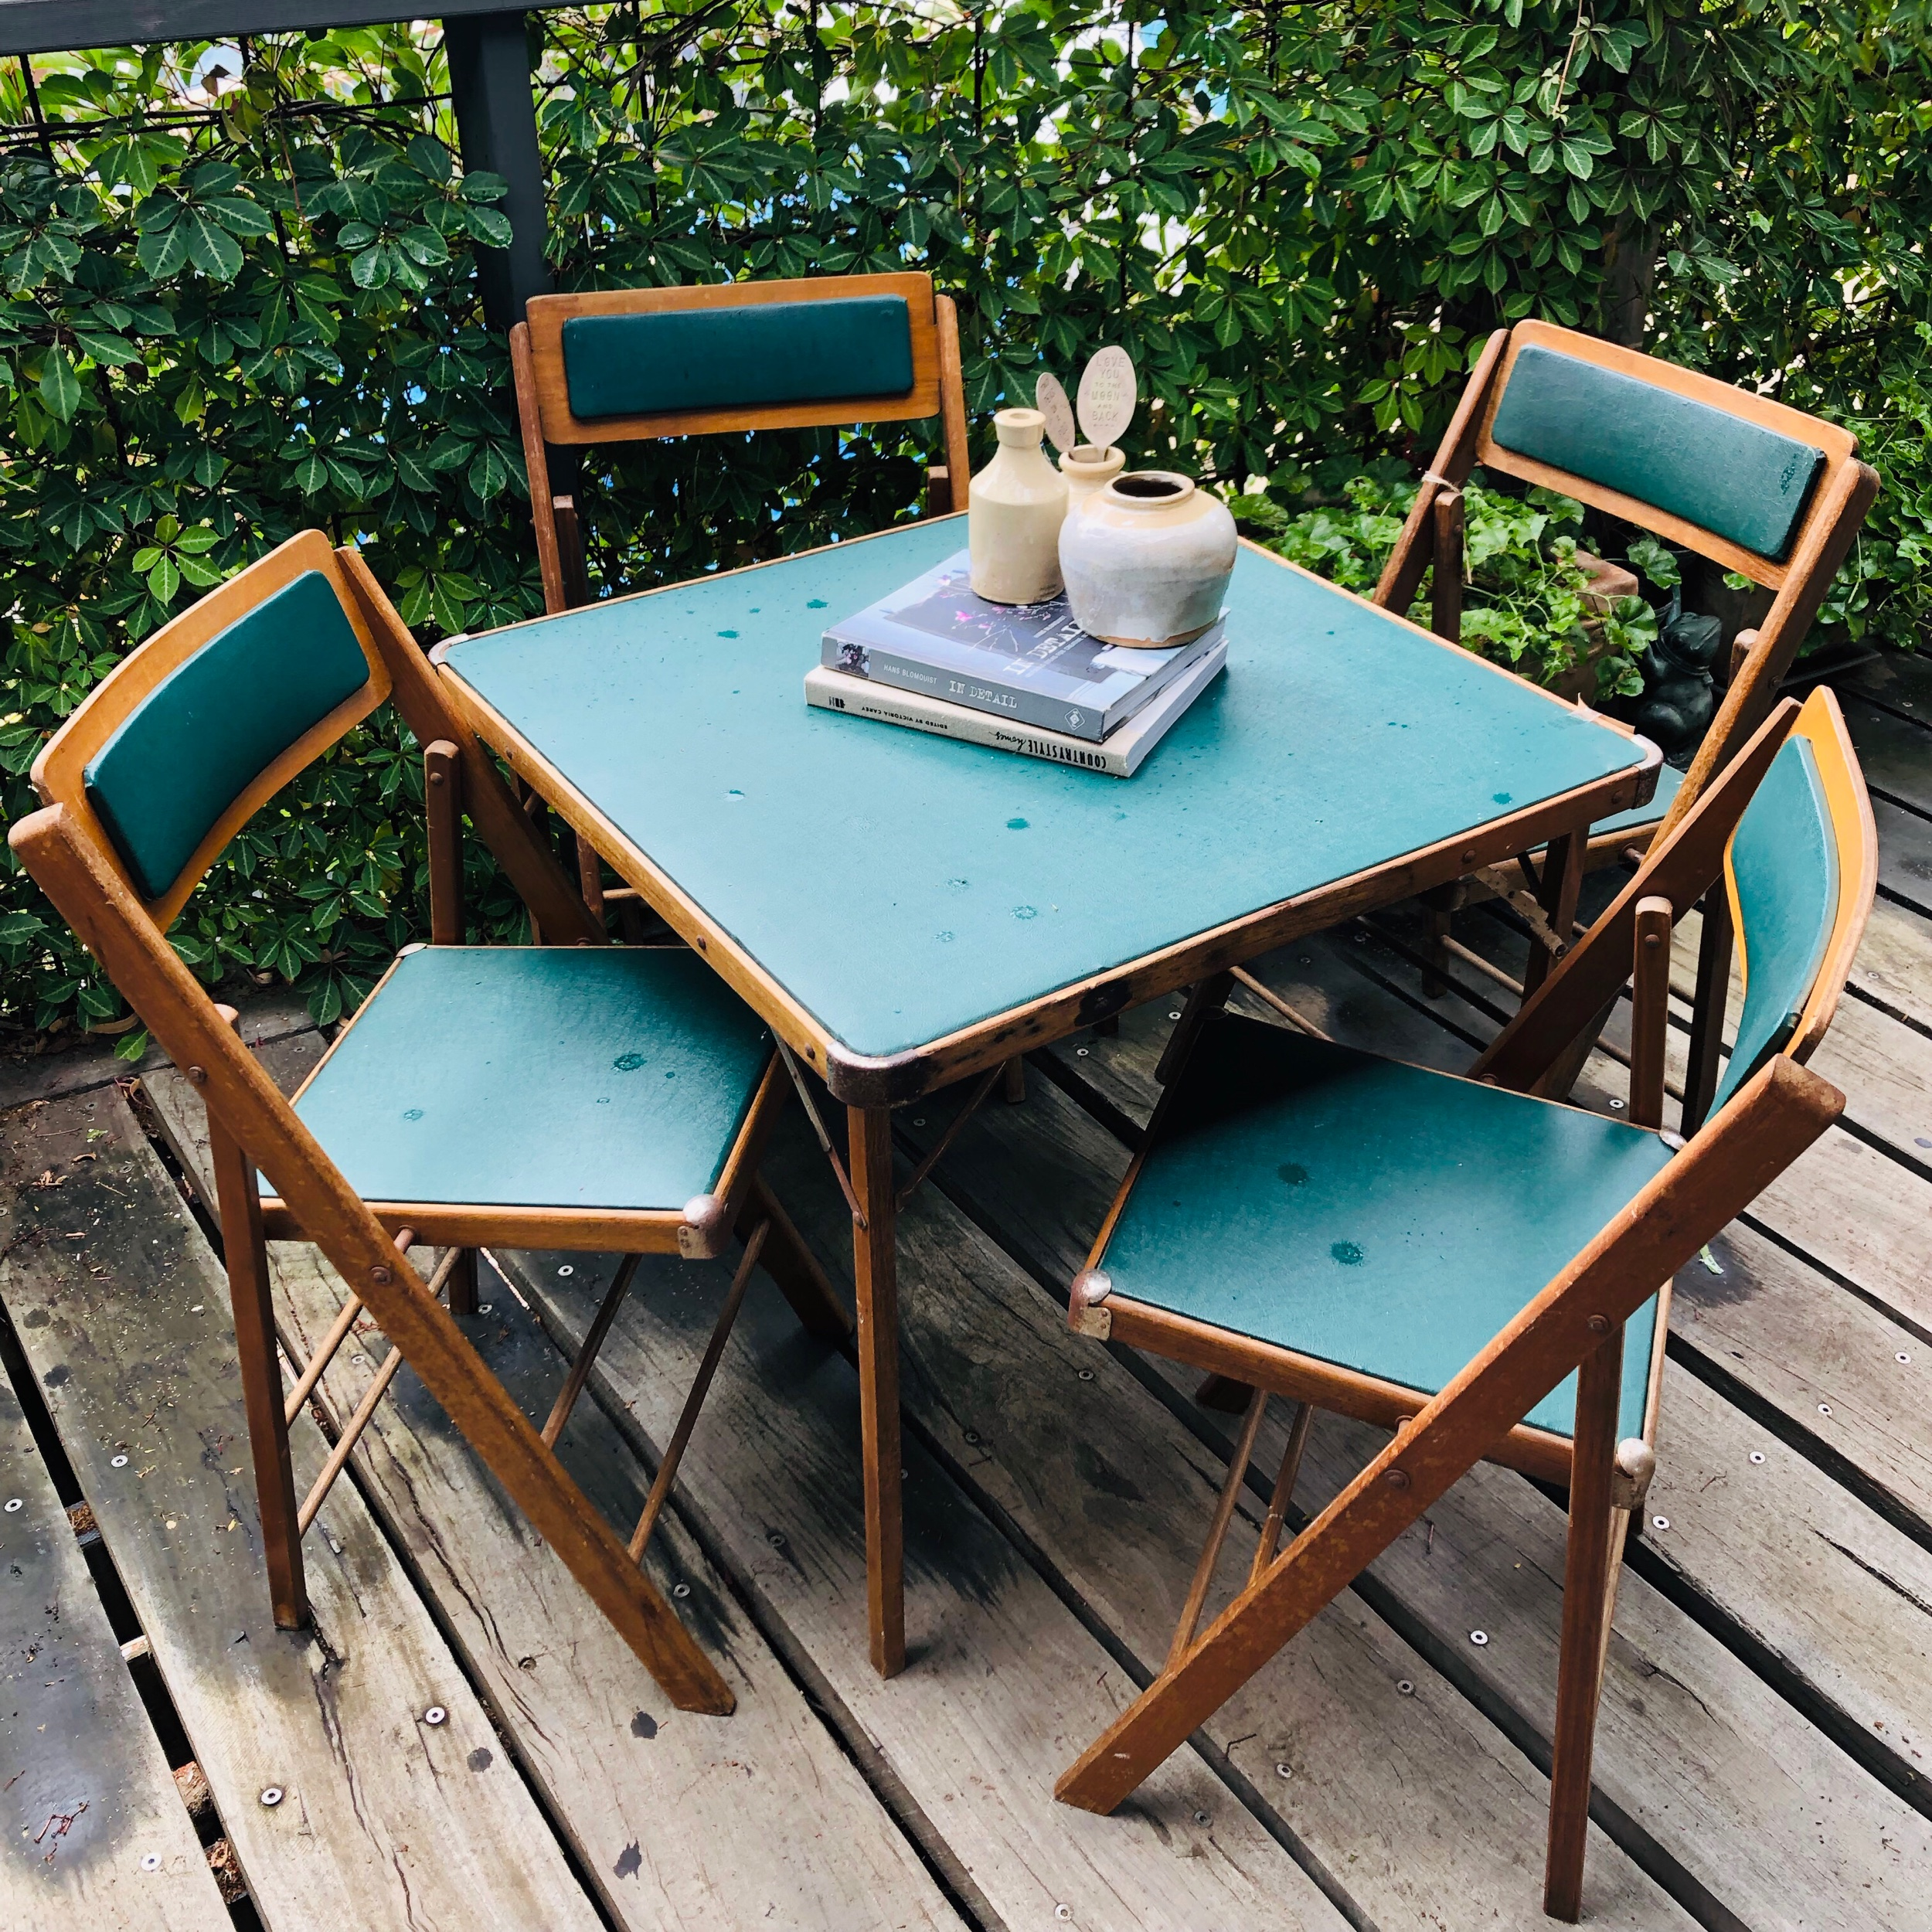 VINTAGE SET OF FOLDING CHAIRS AND TABLE  Made in Richmond Victoria by J.H. & Sons. It's rare now that you find a matching set of folding chairs and card table in such good condition. For its age it was in remarkable condition.